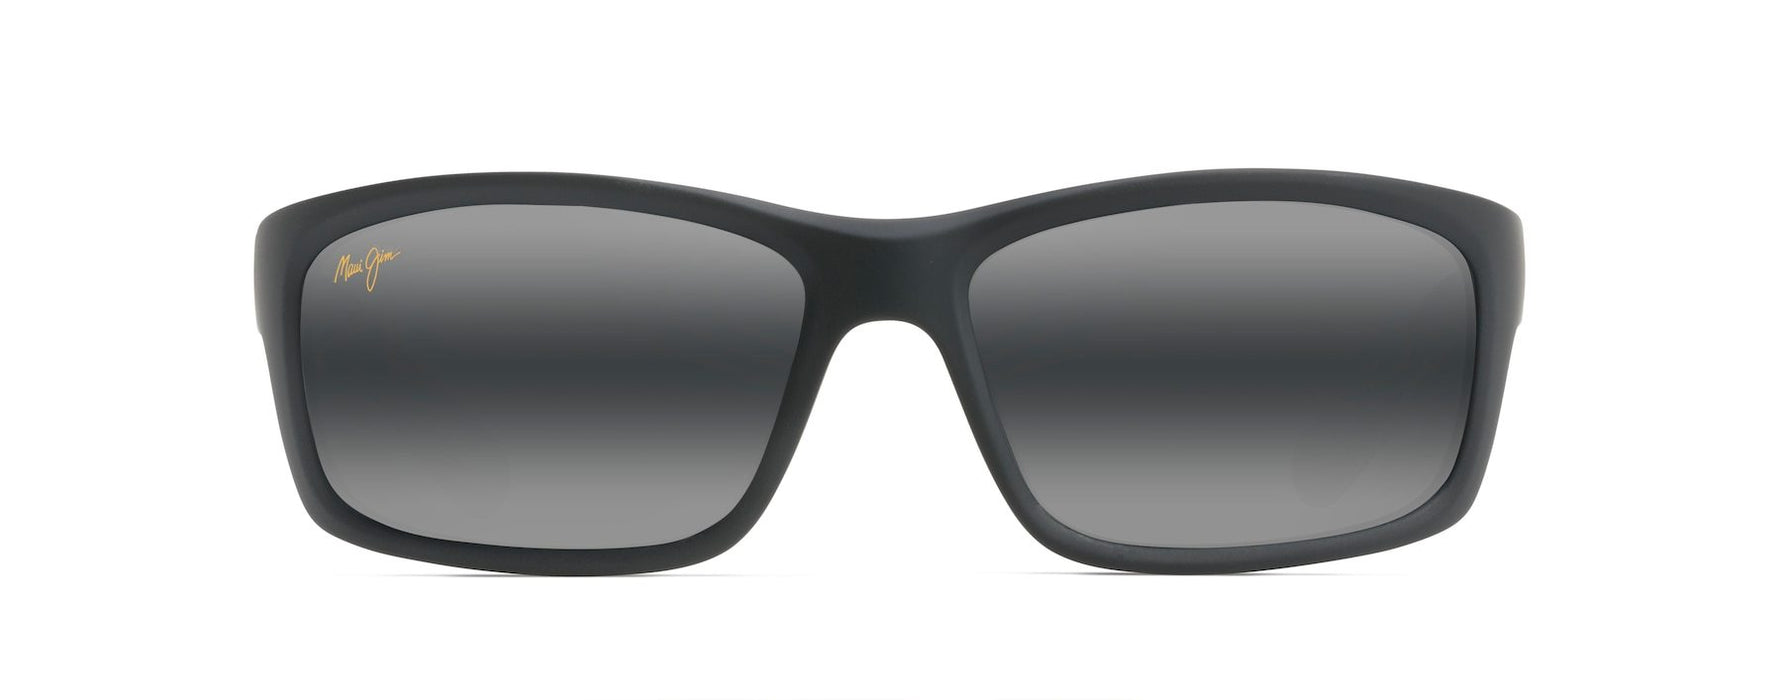 MyMaui Kanaio Coast MM766-010 Sunglasses